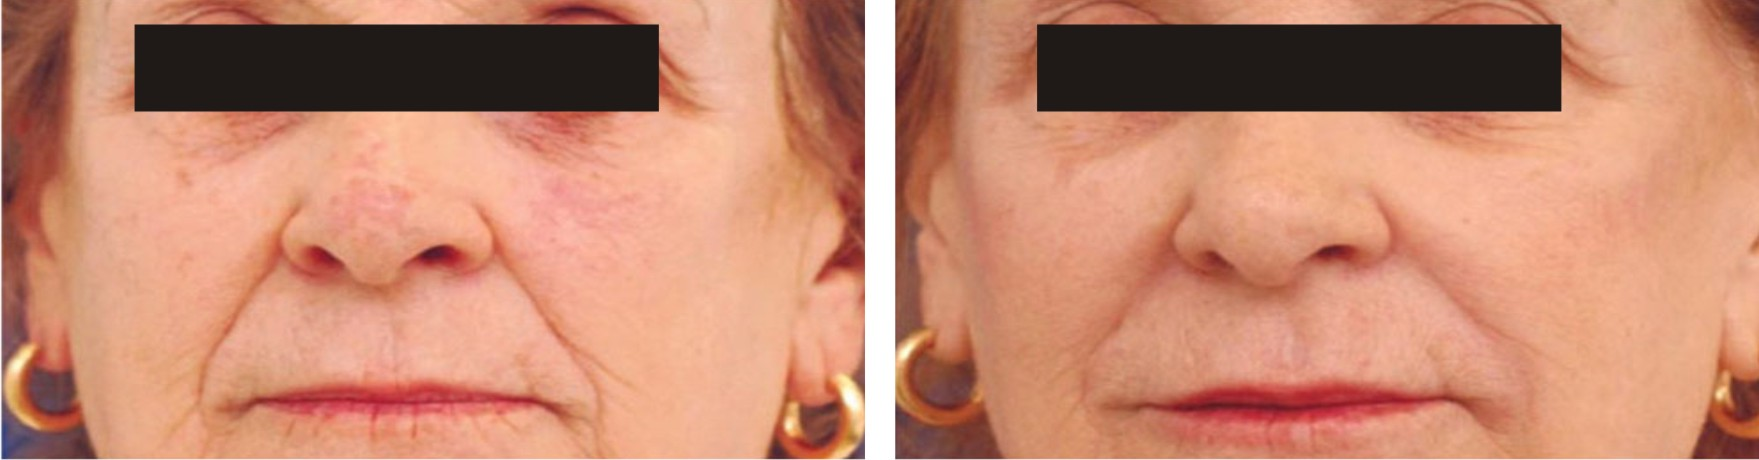 Laser Skin Tightening Image Two